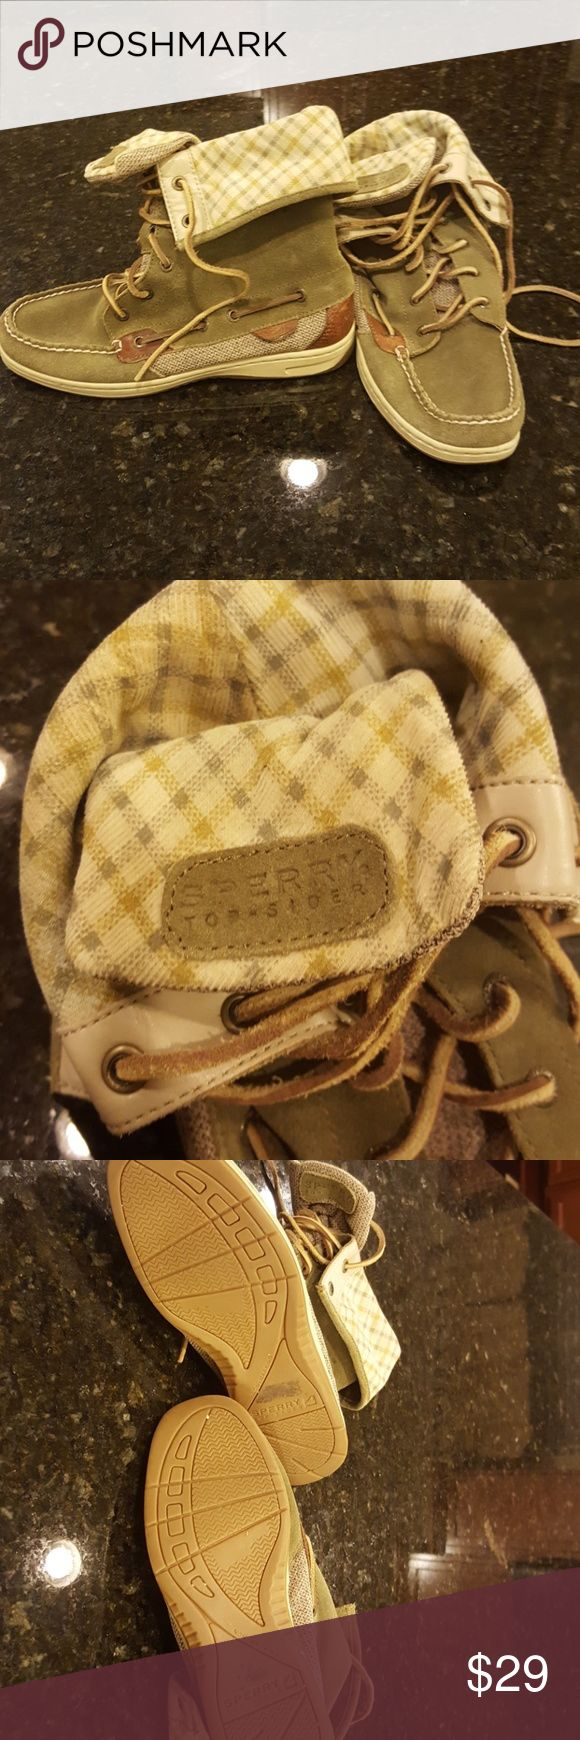 Sperry top sider size 7 Worn to the grocery store once, did not fit me☹ adorable high boat shoes that can be folded down. Olive leather, leather ties, and charcoal and gray pattern inside. Sperry Top-Sider Shoes